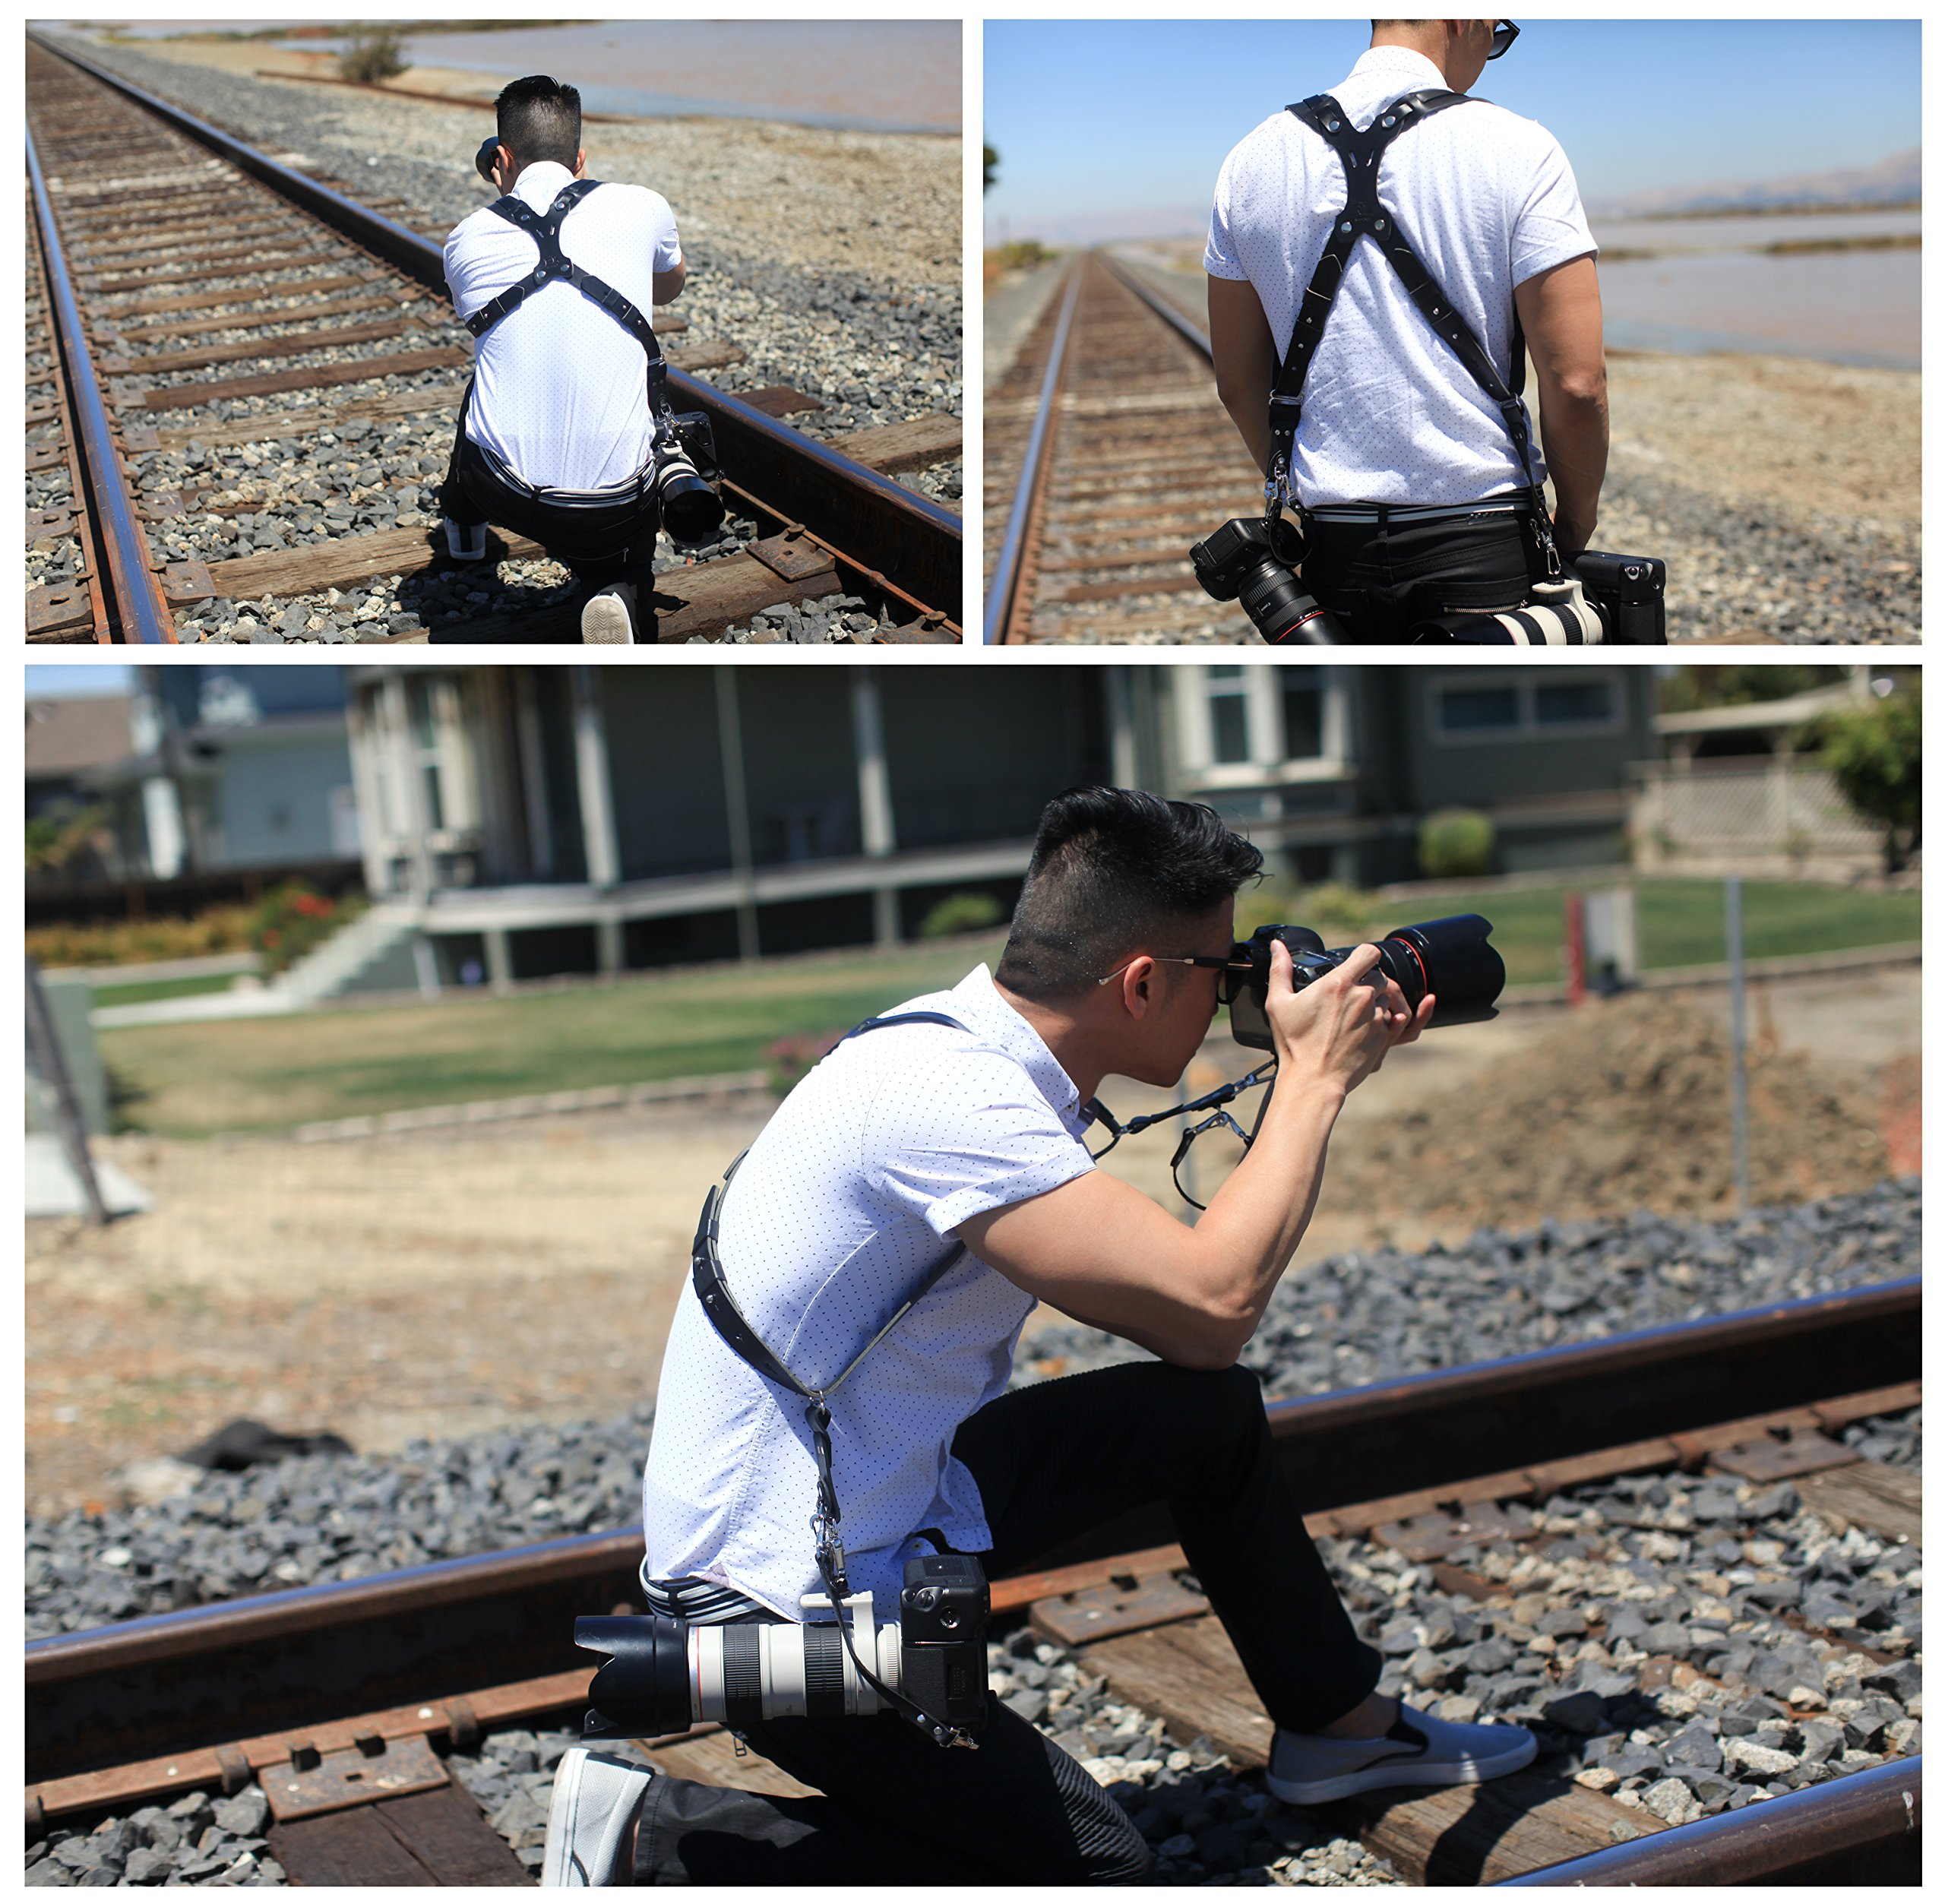 Clydesdale Pro-Dual Handmade Leather Camera Harness, Sling & Strap RL Handcrafts. DLSR, Mirrorless, Point & Shoot Made in The USA (Black, X-Large) by Republic Leather Company (Image #2)